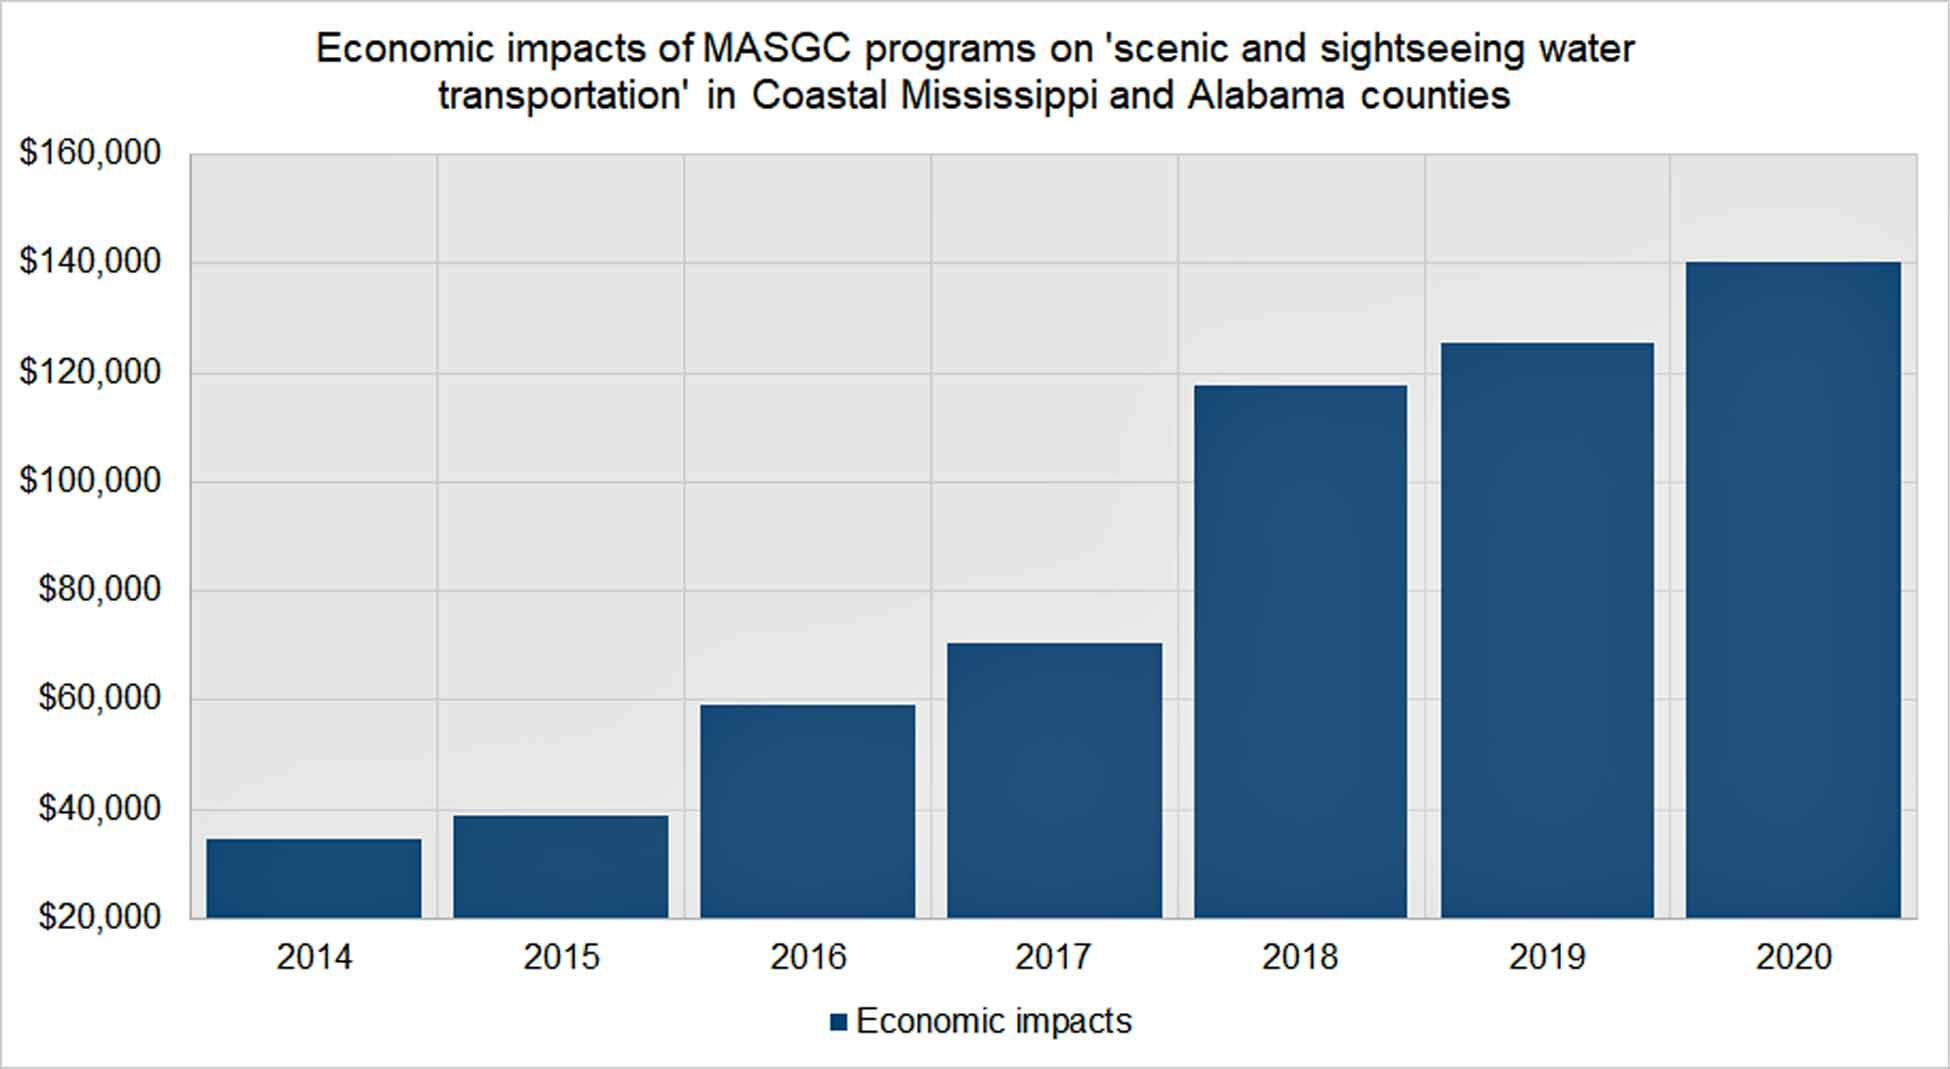 economic_impacts_of_masgc_programs_on_charter_boats_in_coastal_ms_and_al.jpg